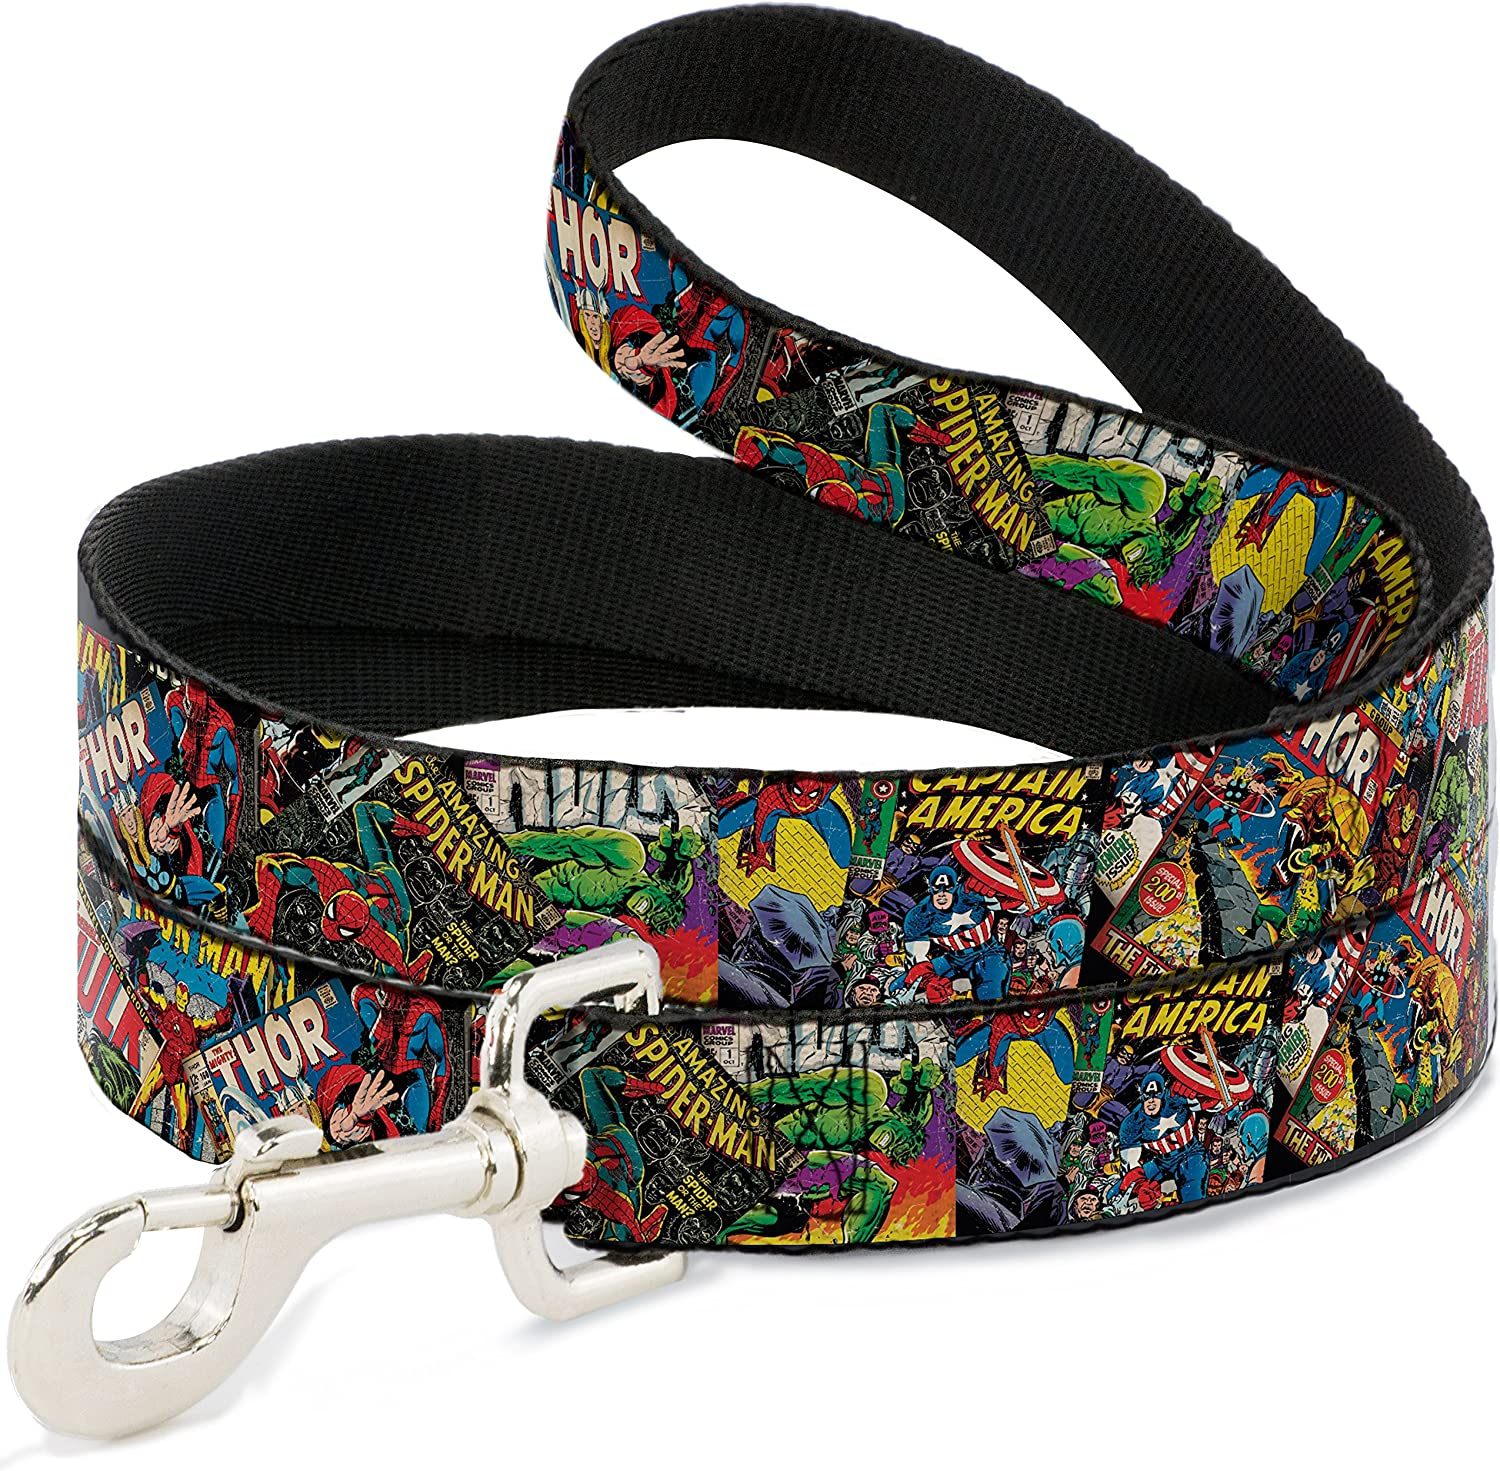 BuckleDown DL6FTWAV035 Dog Leash, Retro Marvel Comic Books Stacked C U, 6'